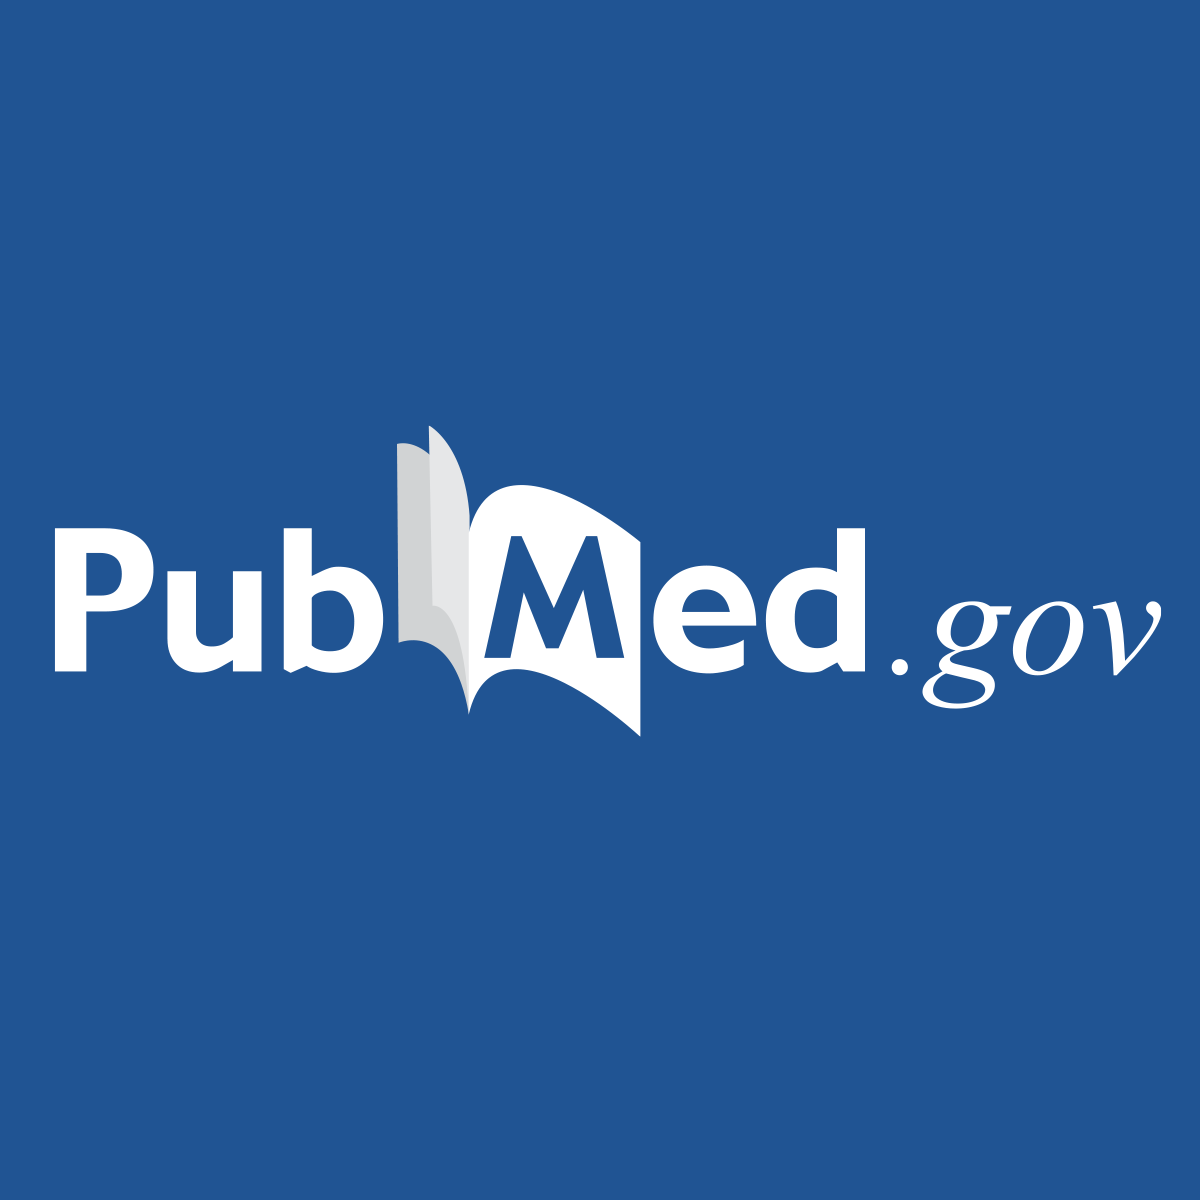 Effect of Alternate-Day Fasting on Weight Loss, Weight Maintenance, and Cardioprotection Among Metabolically Healthy Obese Adults: A Randomized Clinical Trial